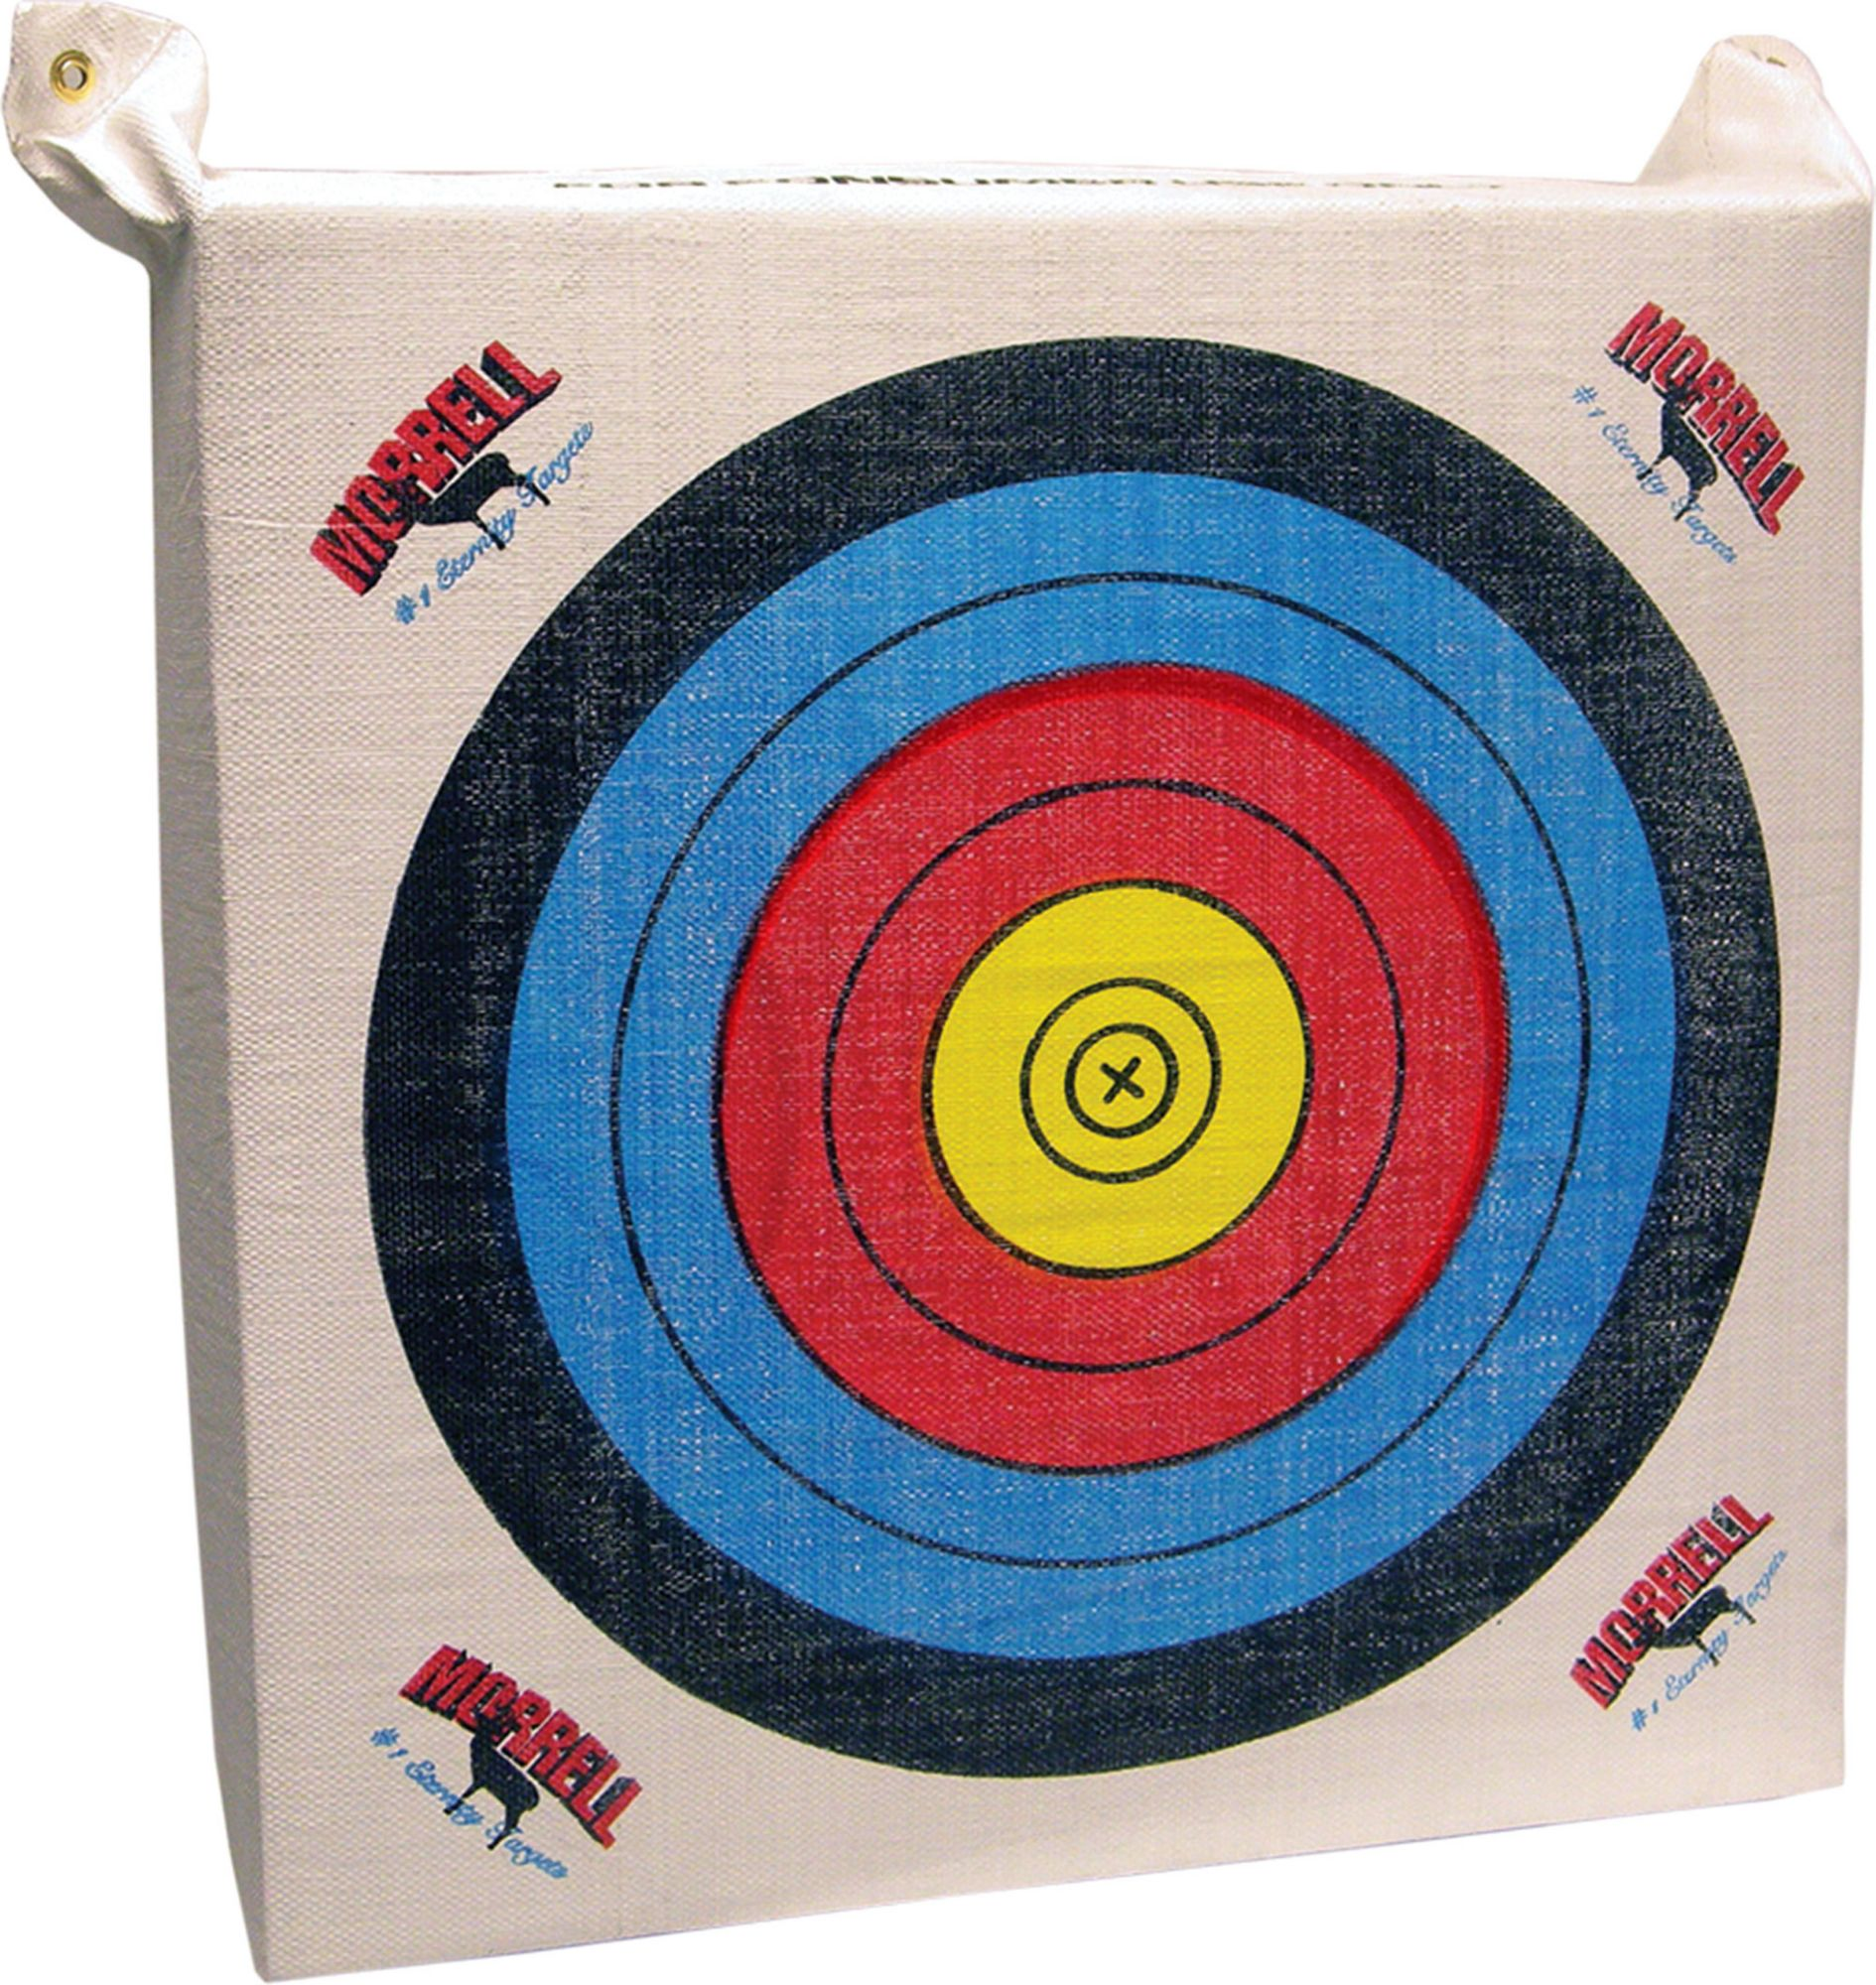 Morrell NASP Youth Bag Archery Target, Size: One size thumbnail